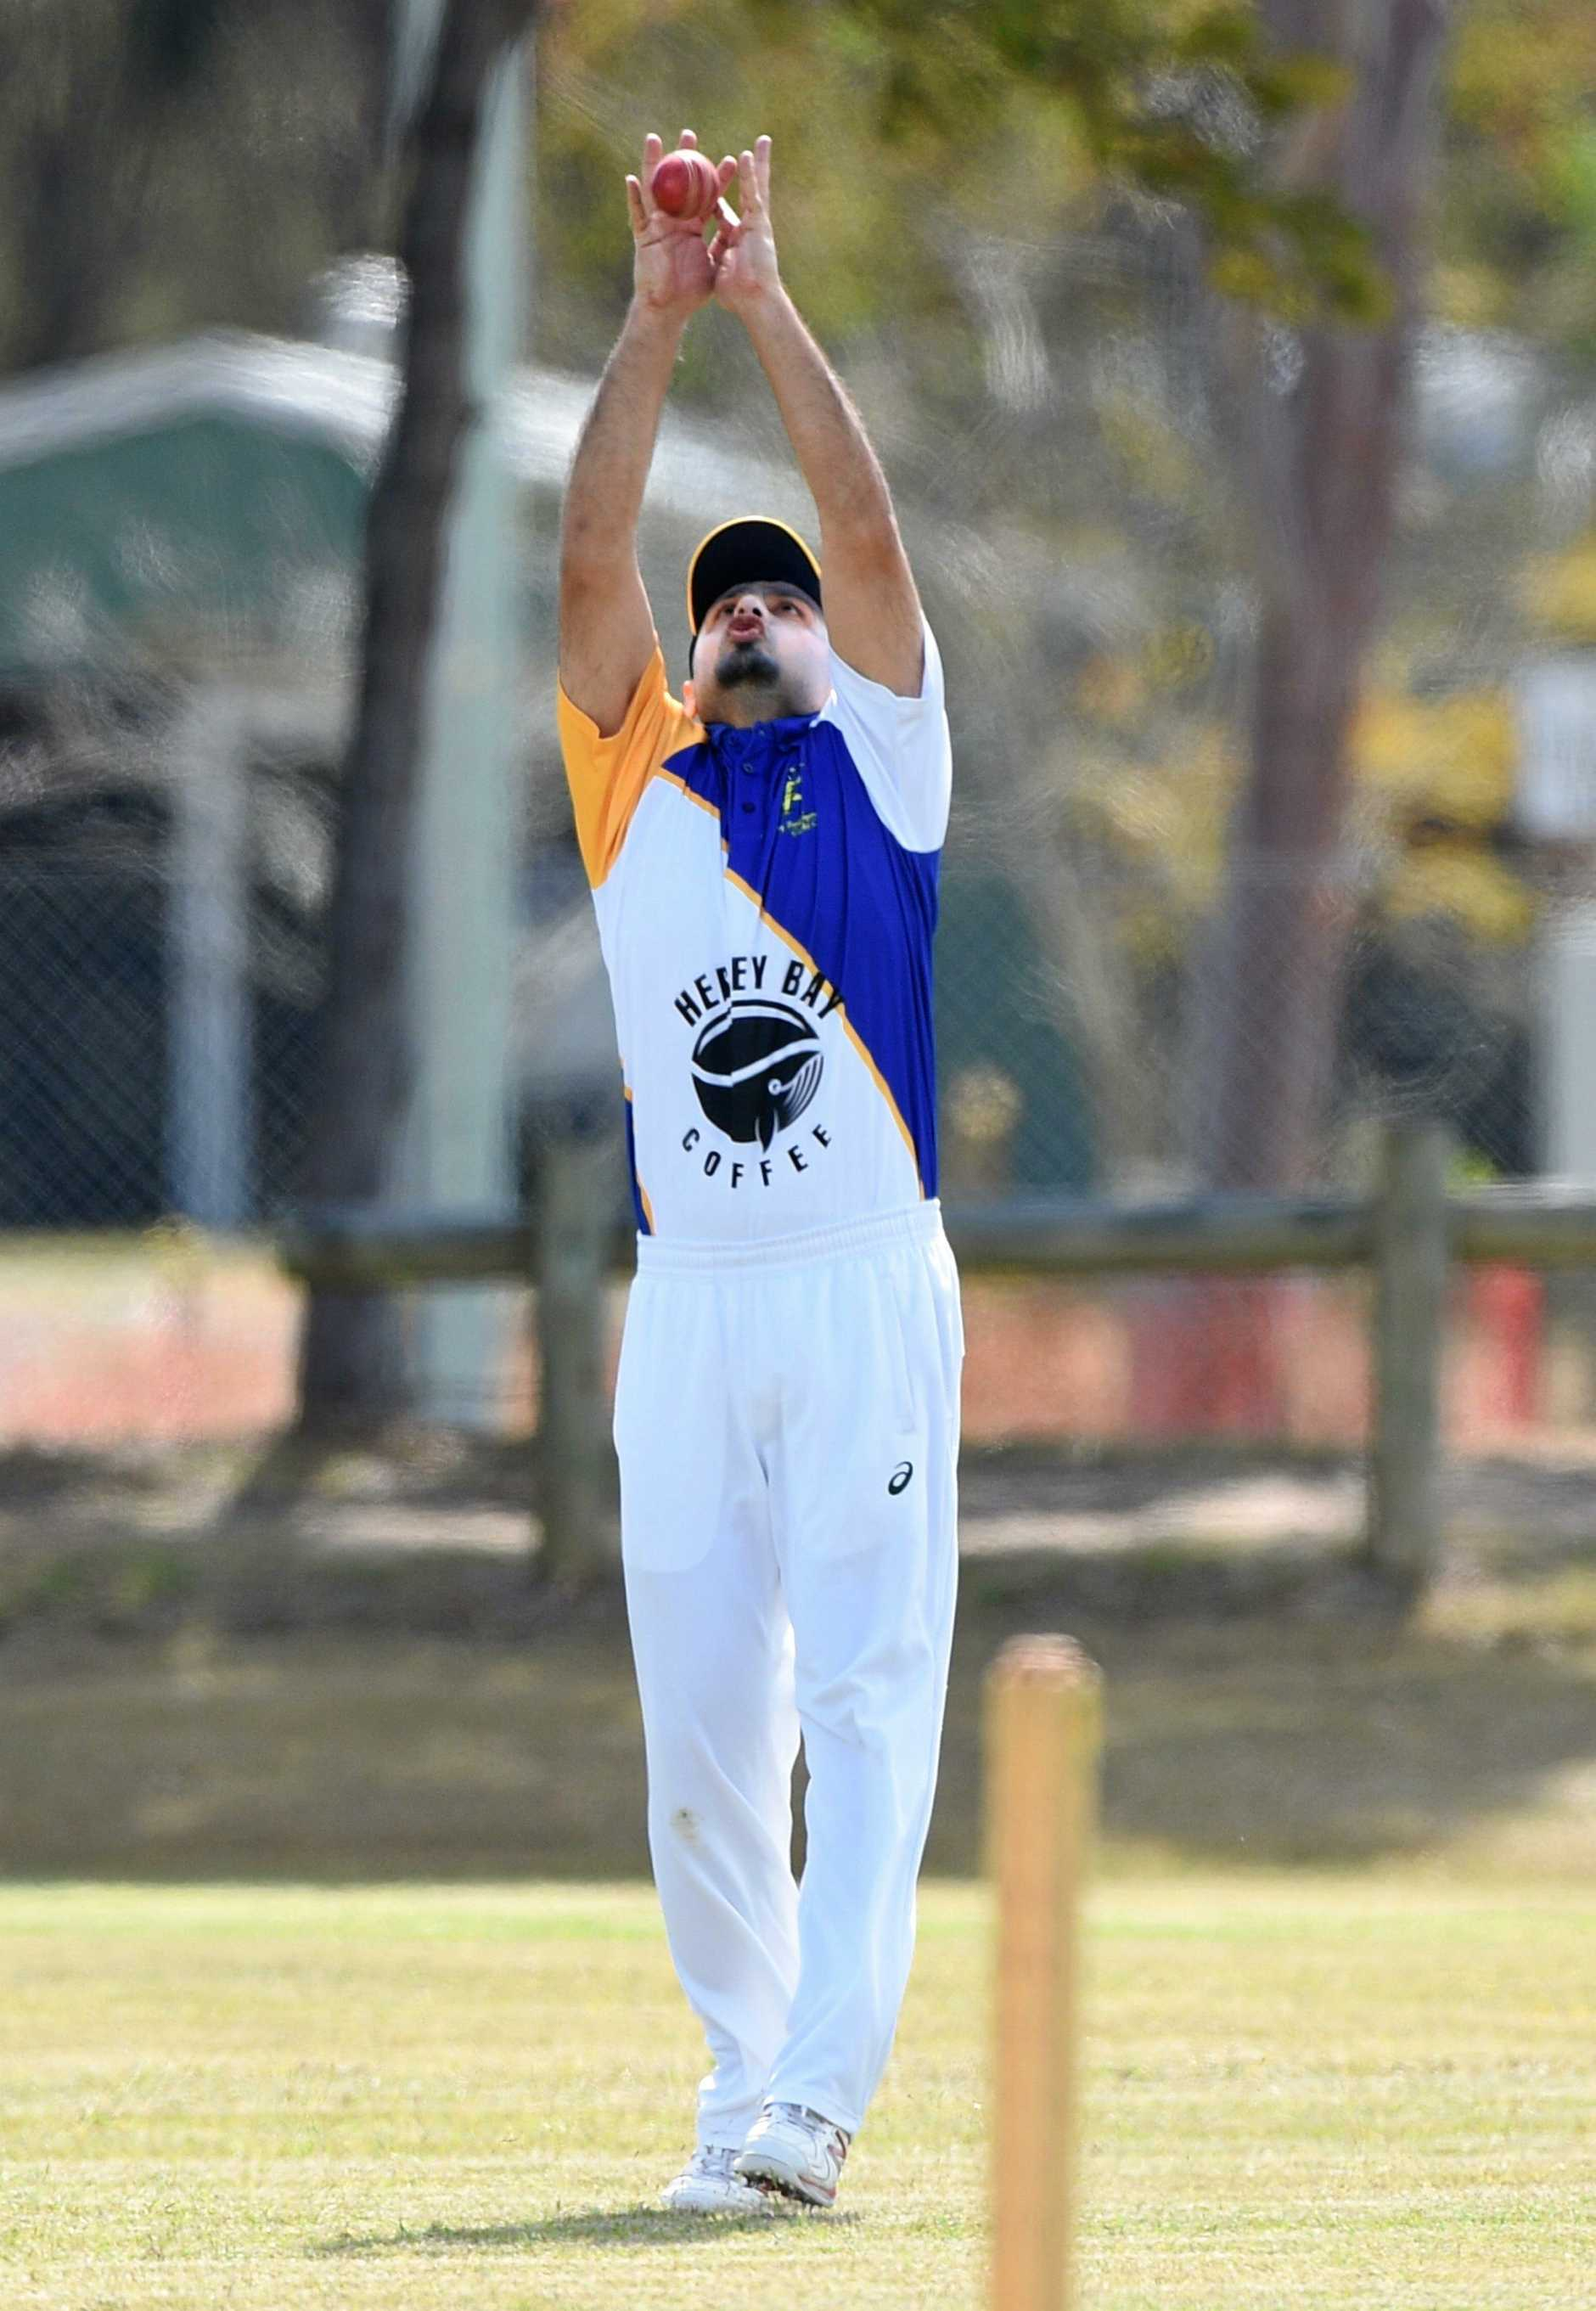 Hervey Bay cricket - Cavaliers (batting) v Bushrangers (fielding). Zubair Khan takes a catch in the outfield.